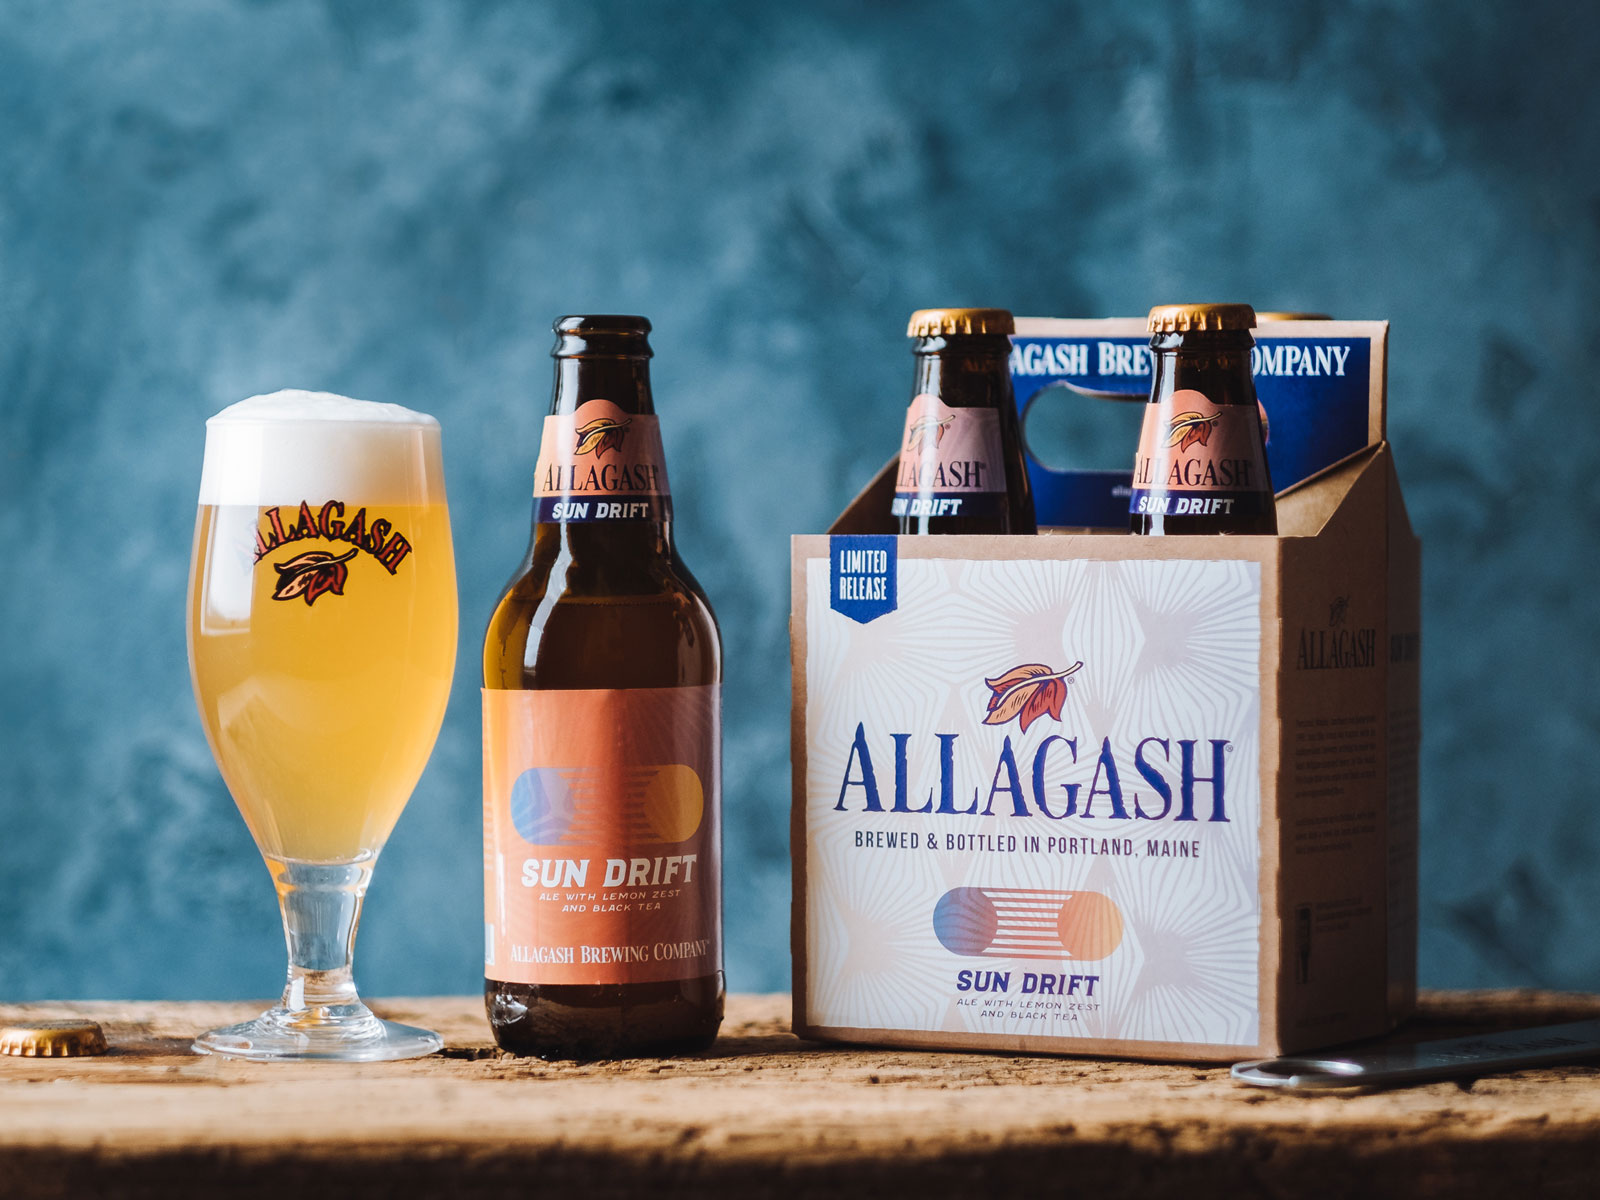 Allagash Releases Tea Beer Well Ahead of Summer Weather